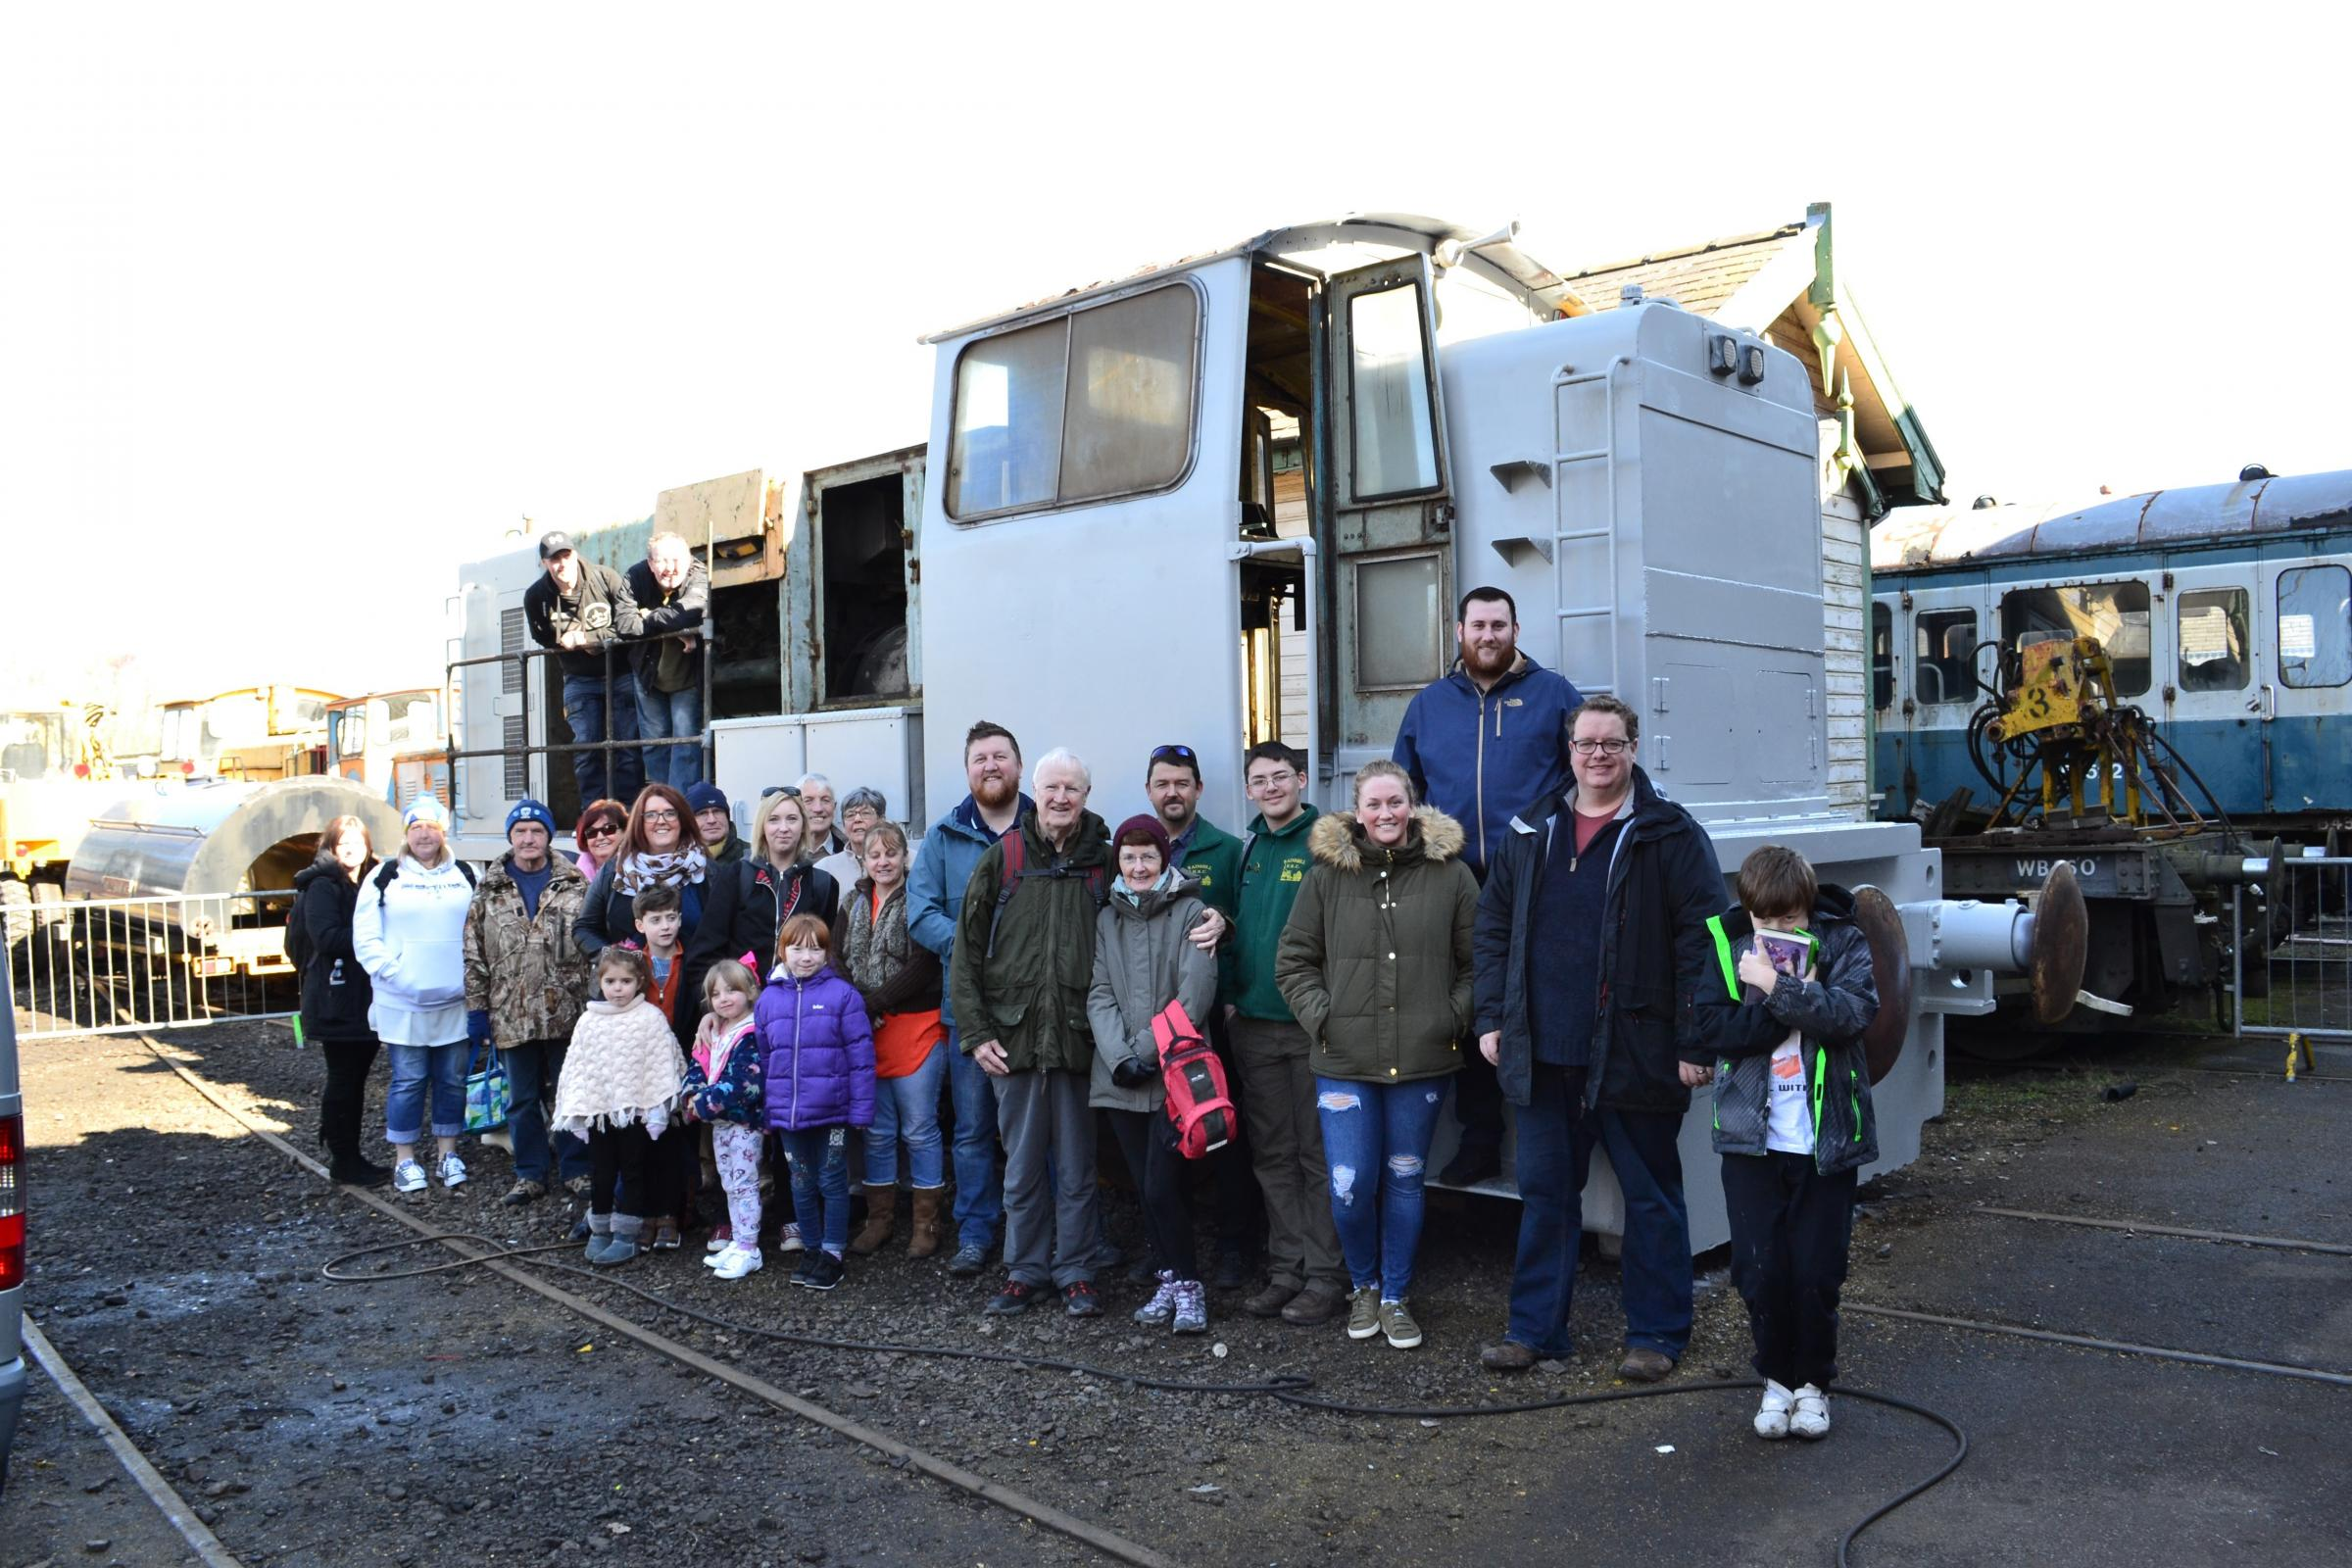 Residents at the Chasewater Railway to check on progress